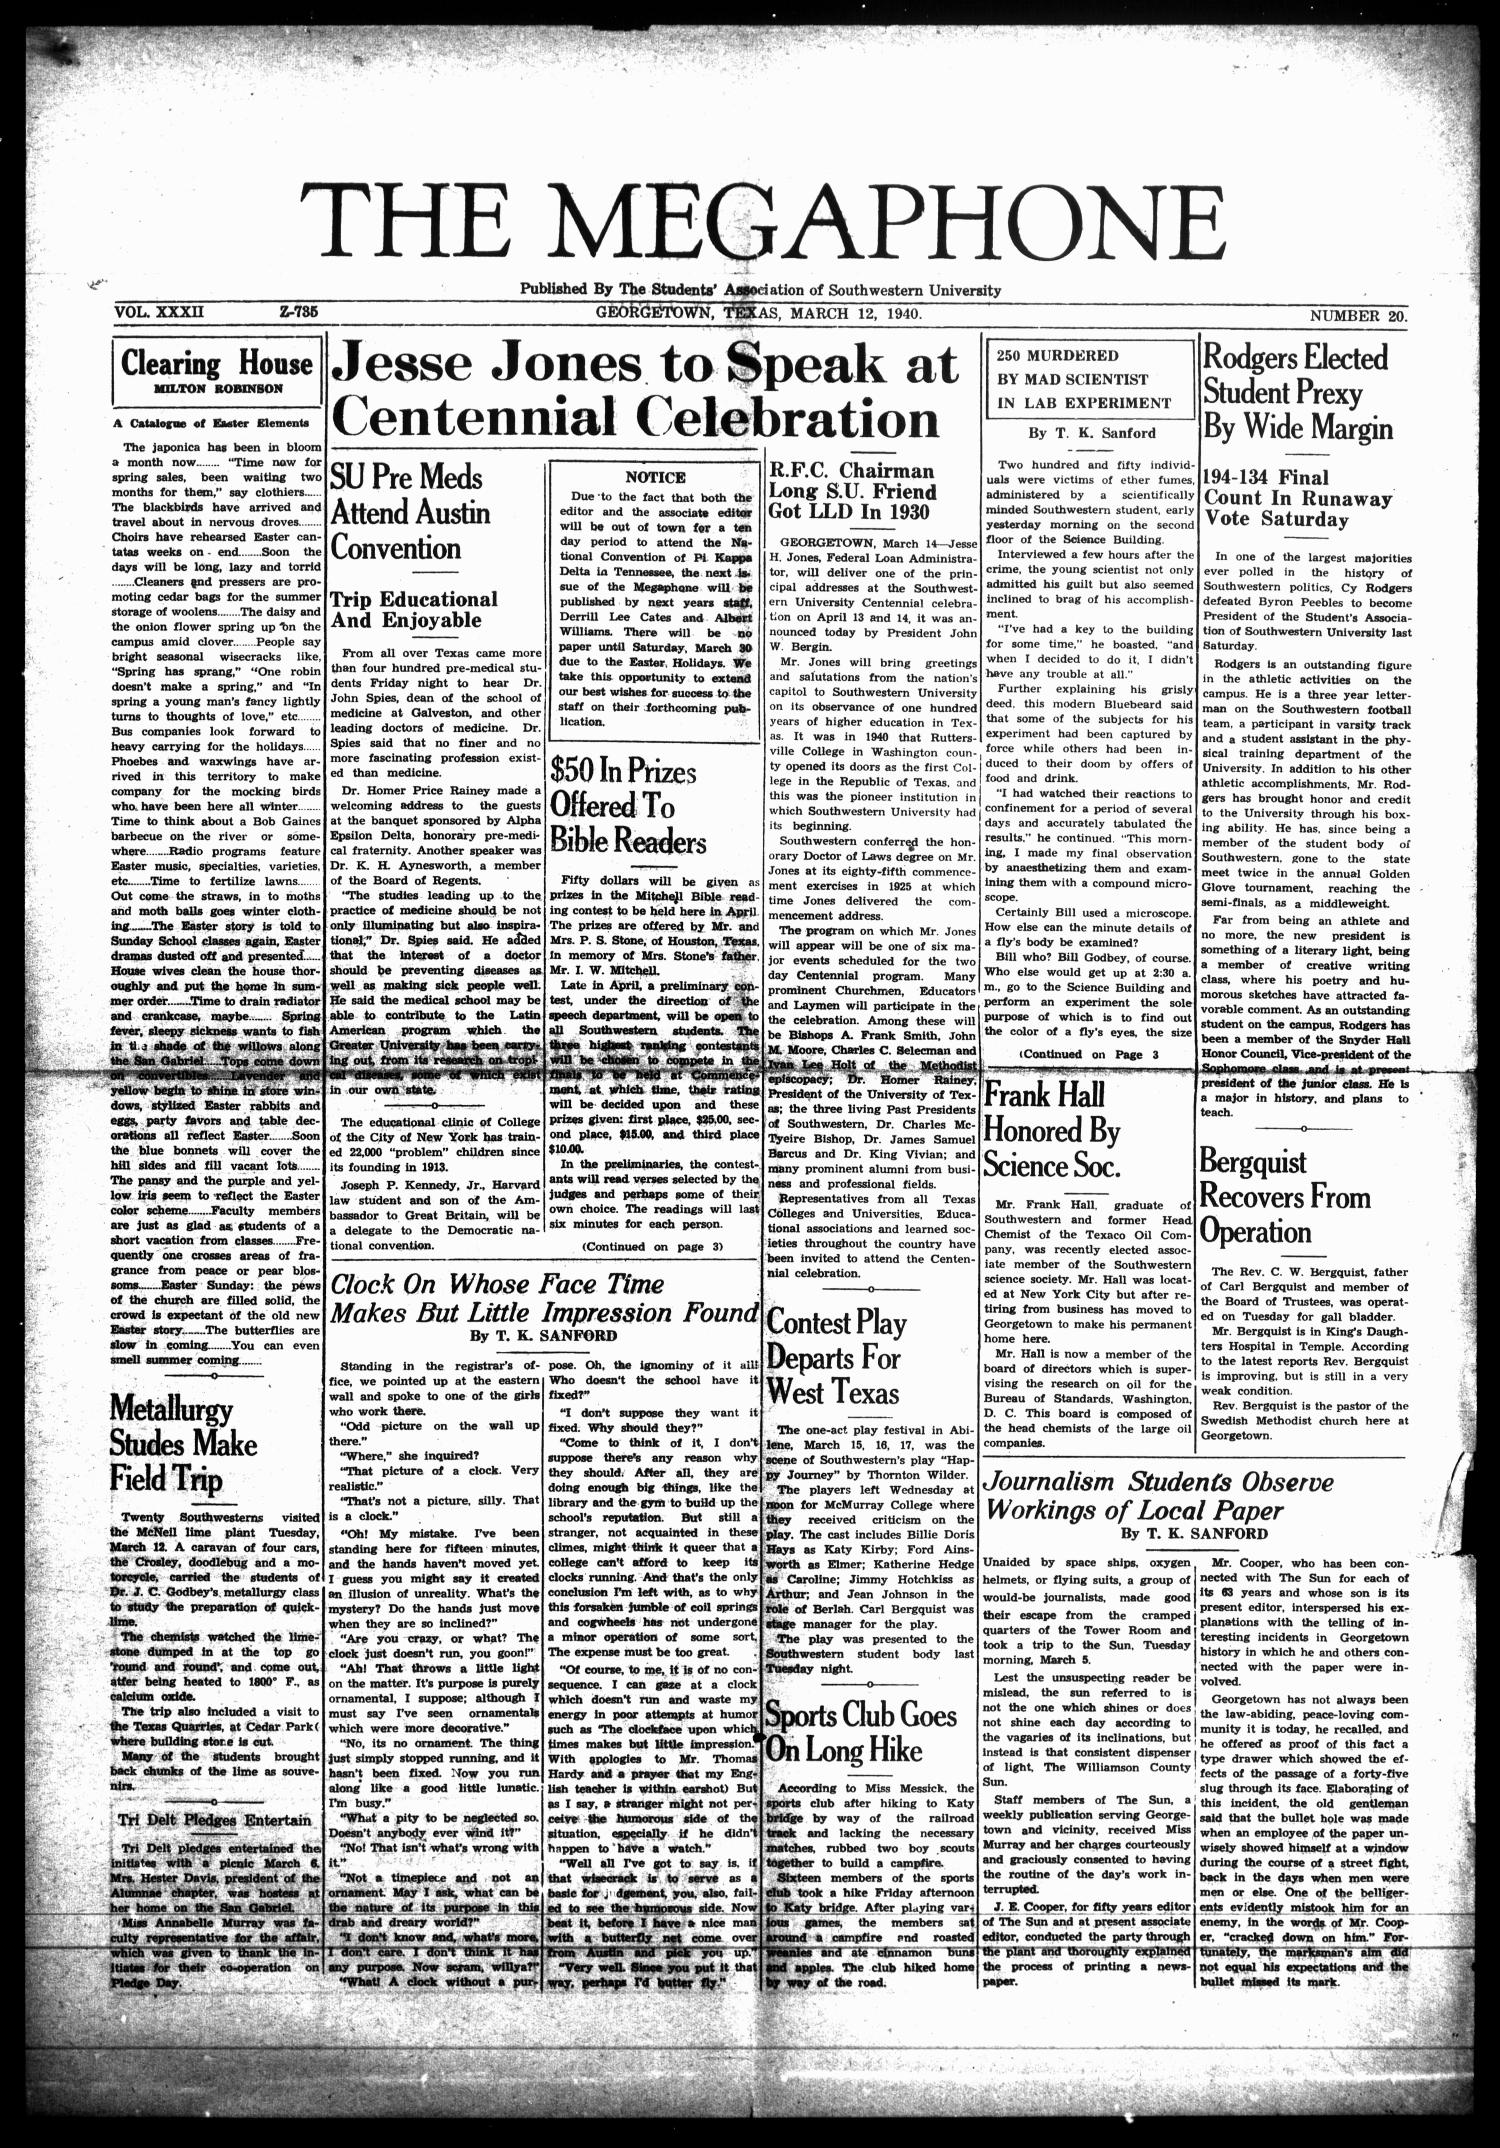 The Megaphone (Georgetown, Tex.), Vol. 33, No. 20, Ed. 1 Tuesday, March 12, 1940                                                                                                      [Sequence #]: 1 of 4